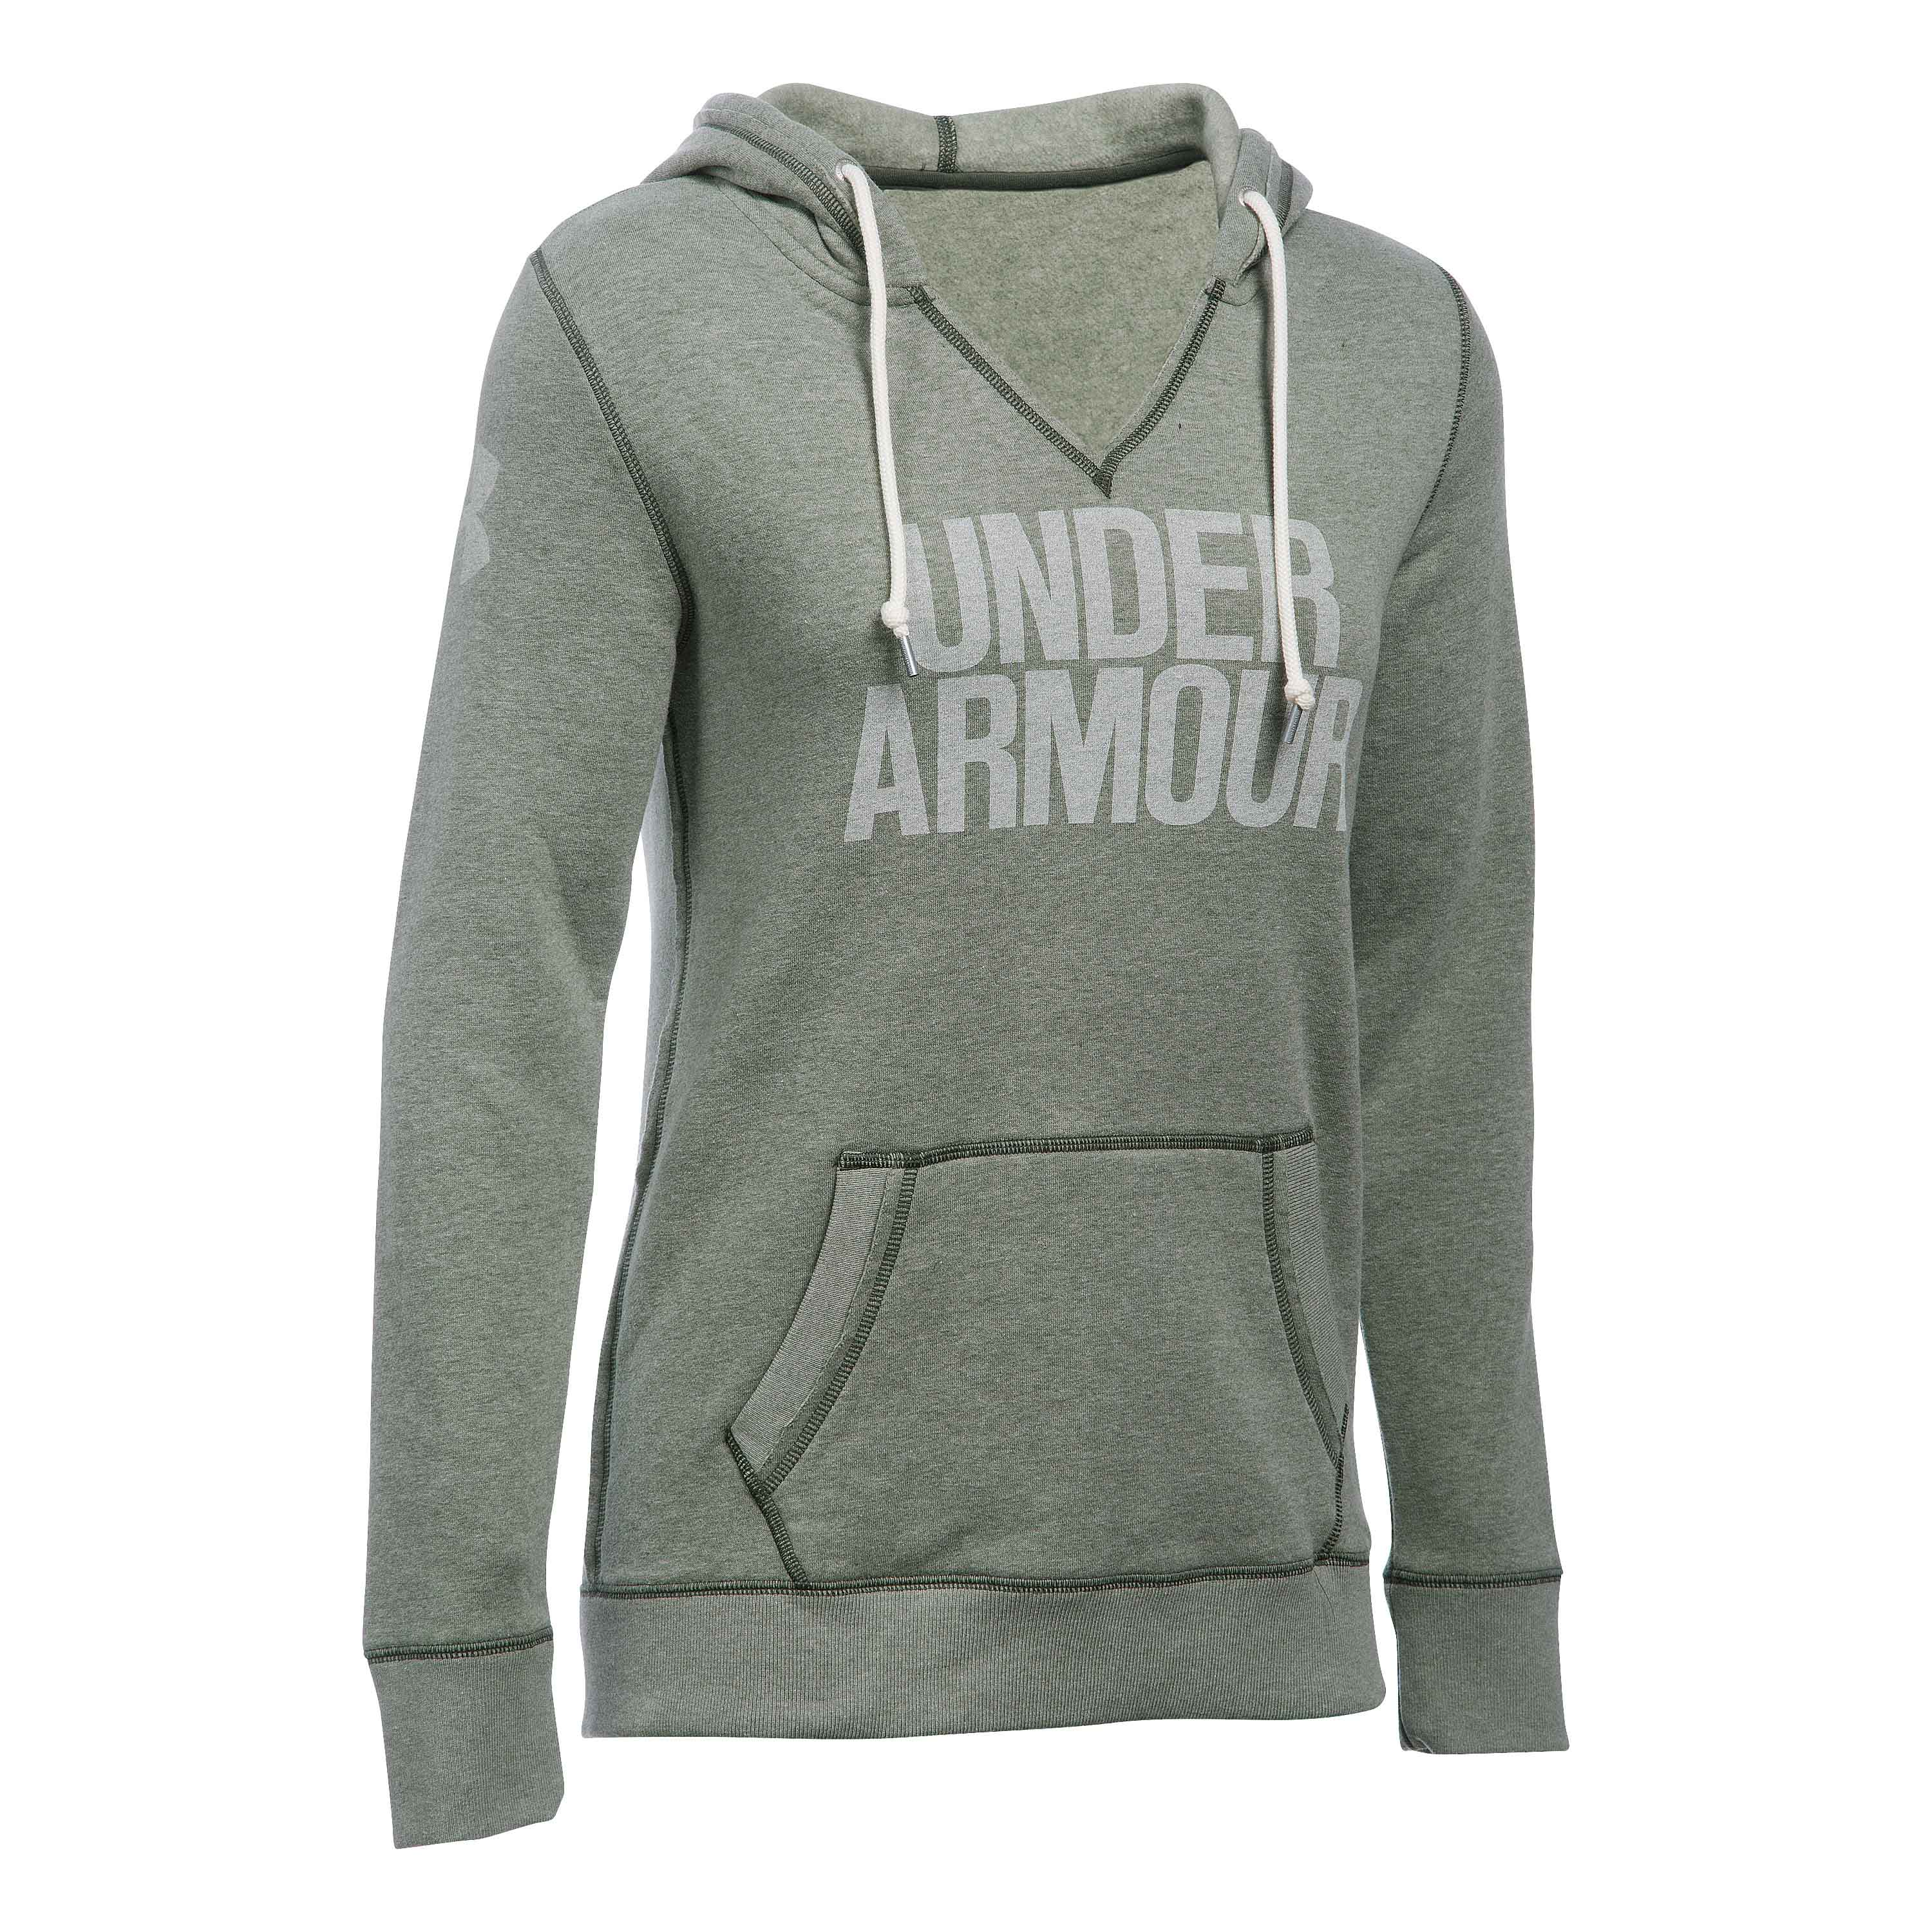 Under Armour Women Pullover Favorite Fleece oliv